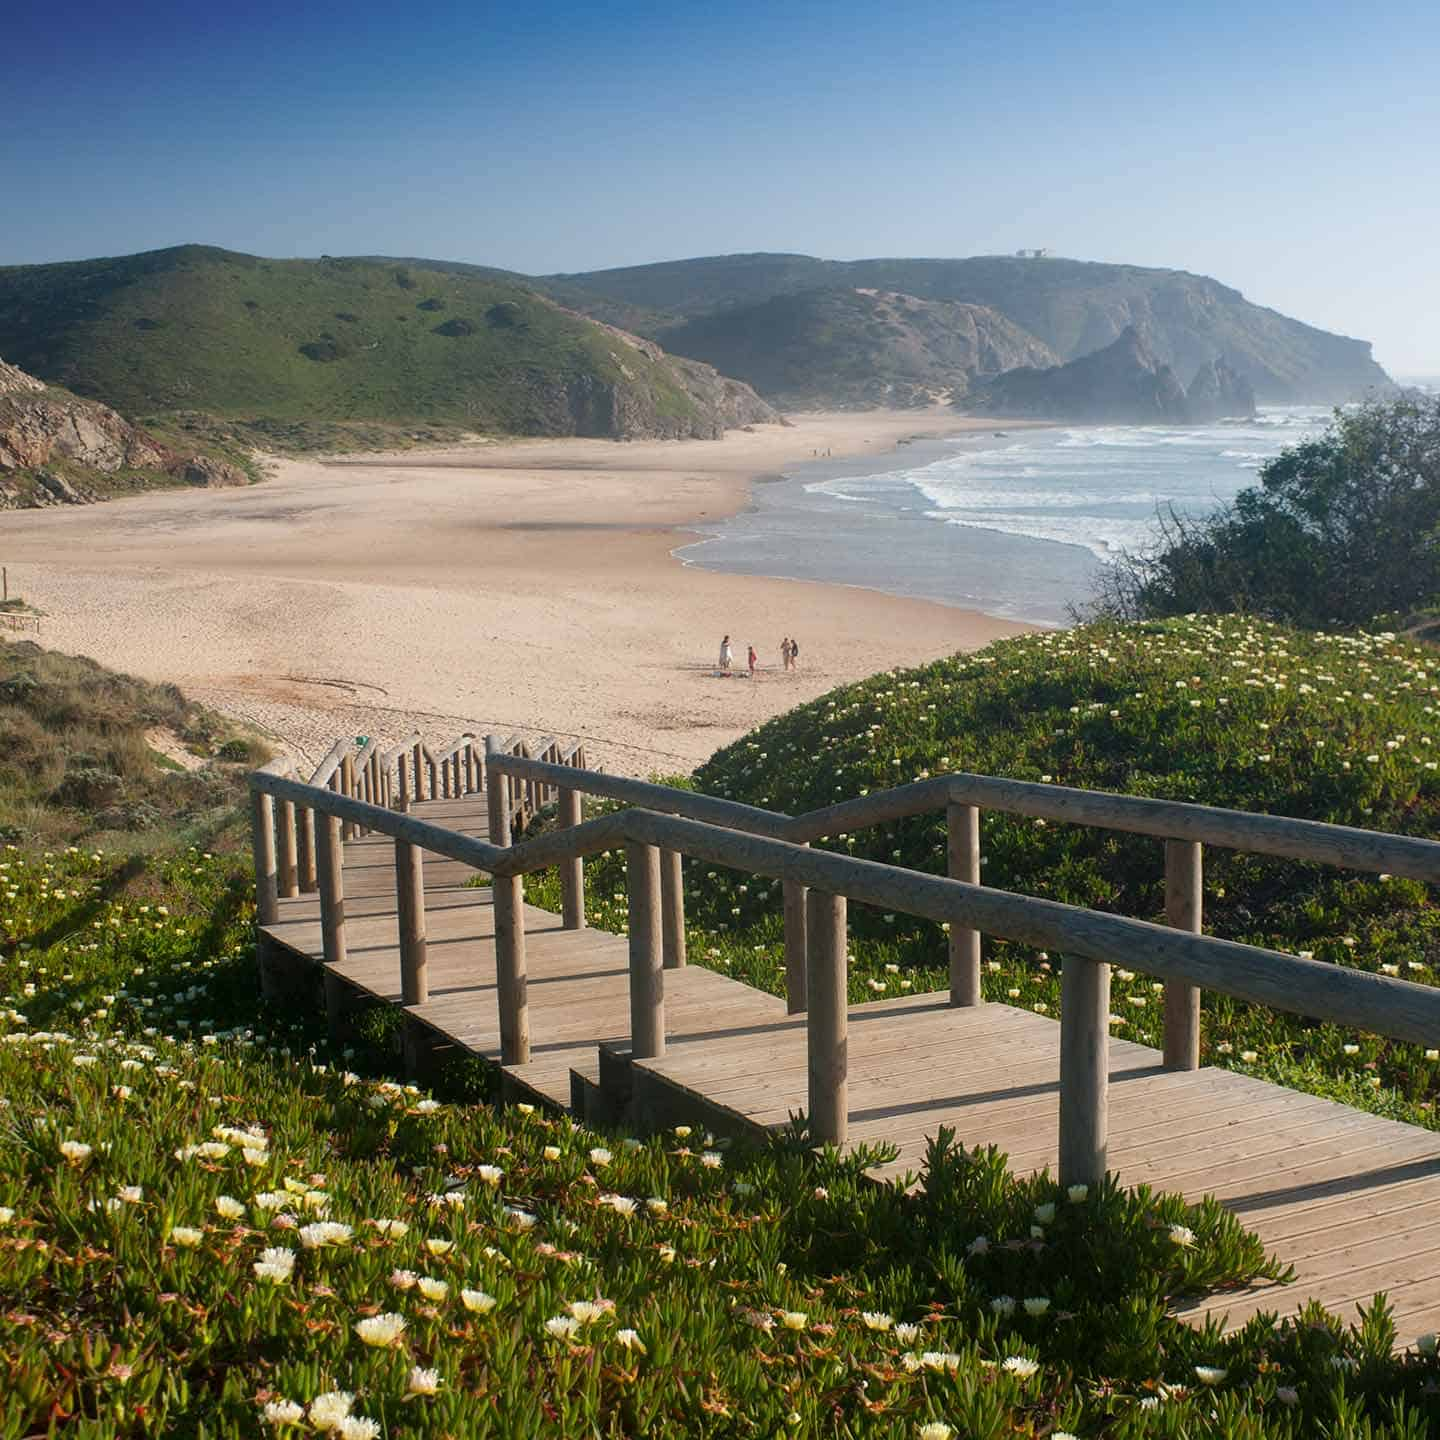 Best beaches in Algarve Image of Praia do Amado beach and spring wildflowers